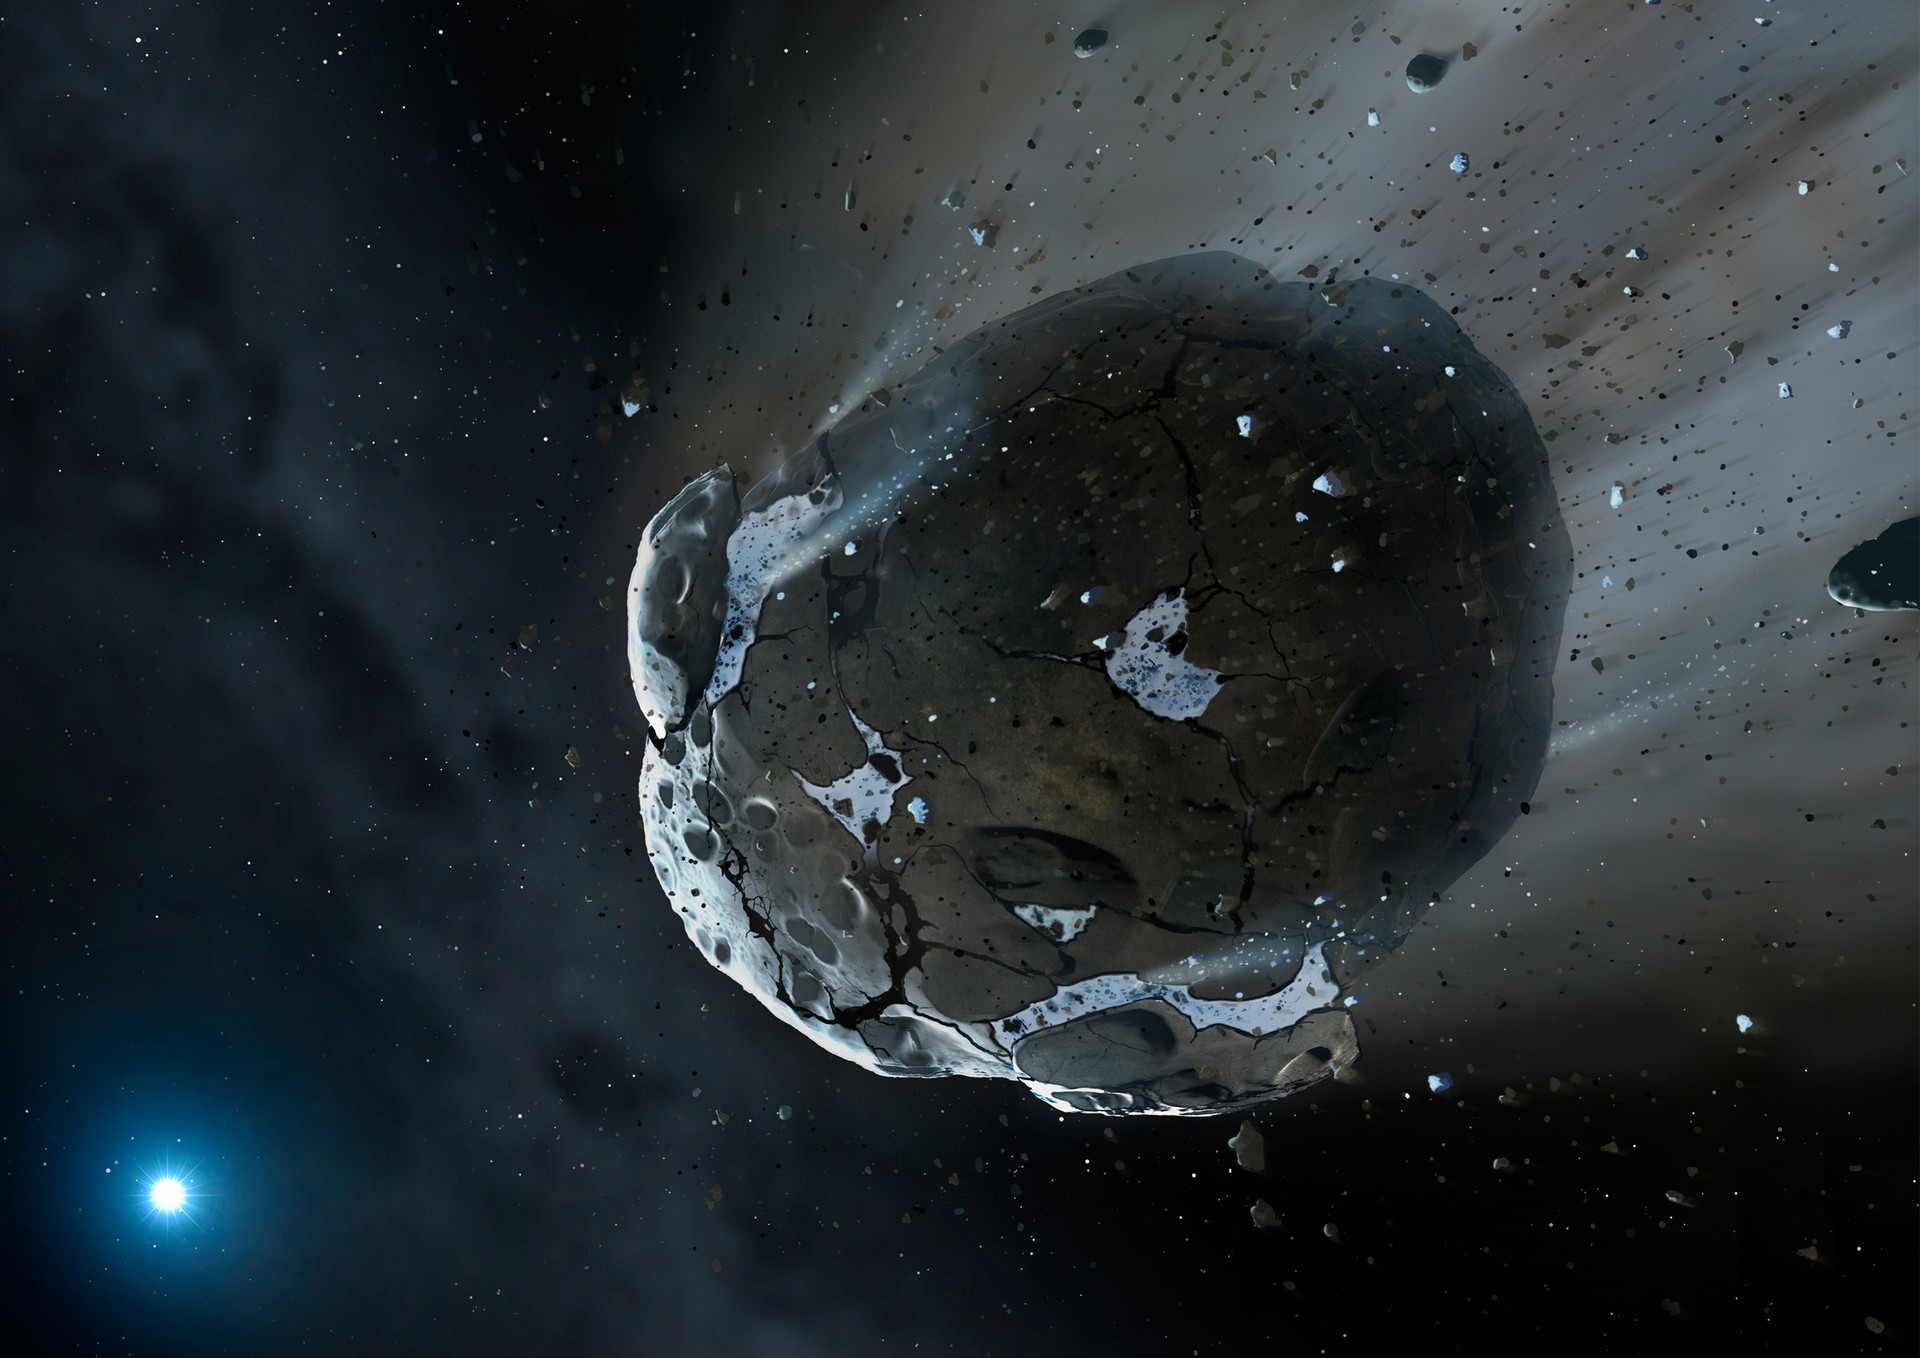 asteroide (Foto: wikimedia commons)